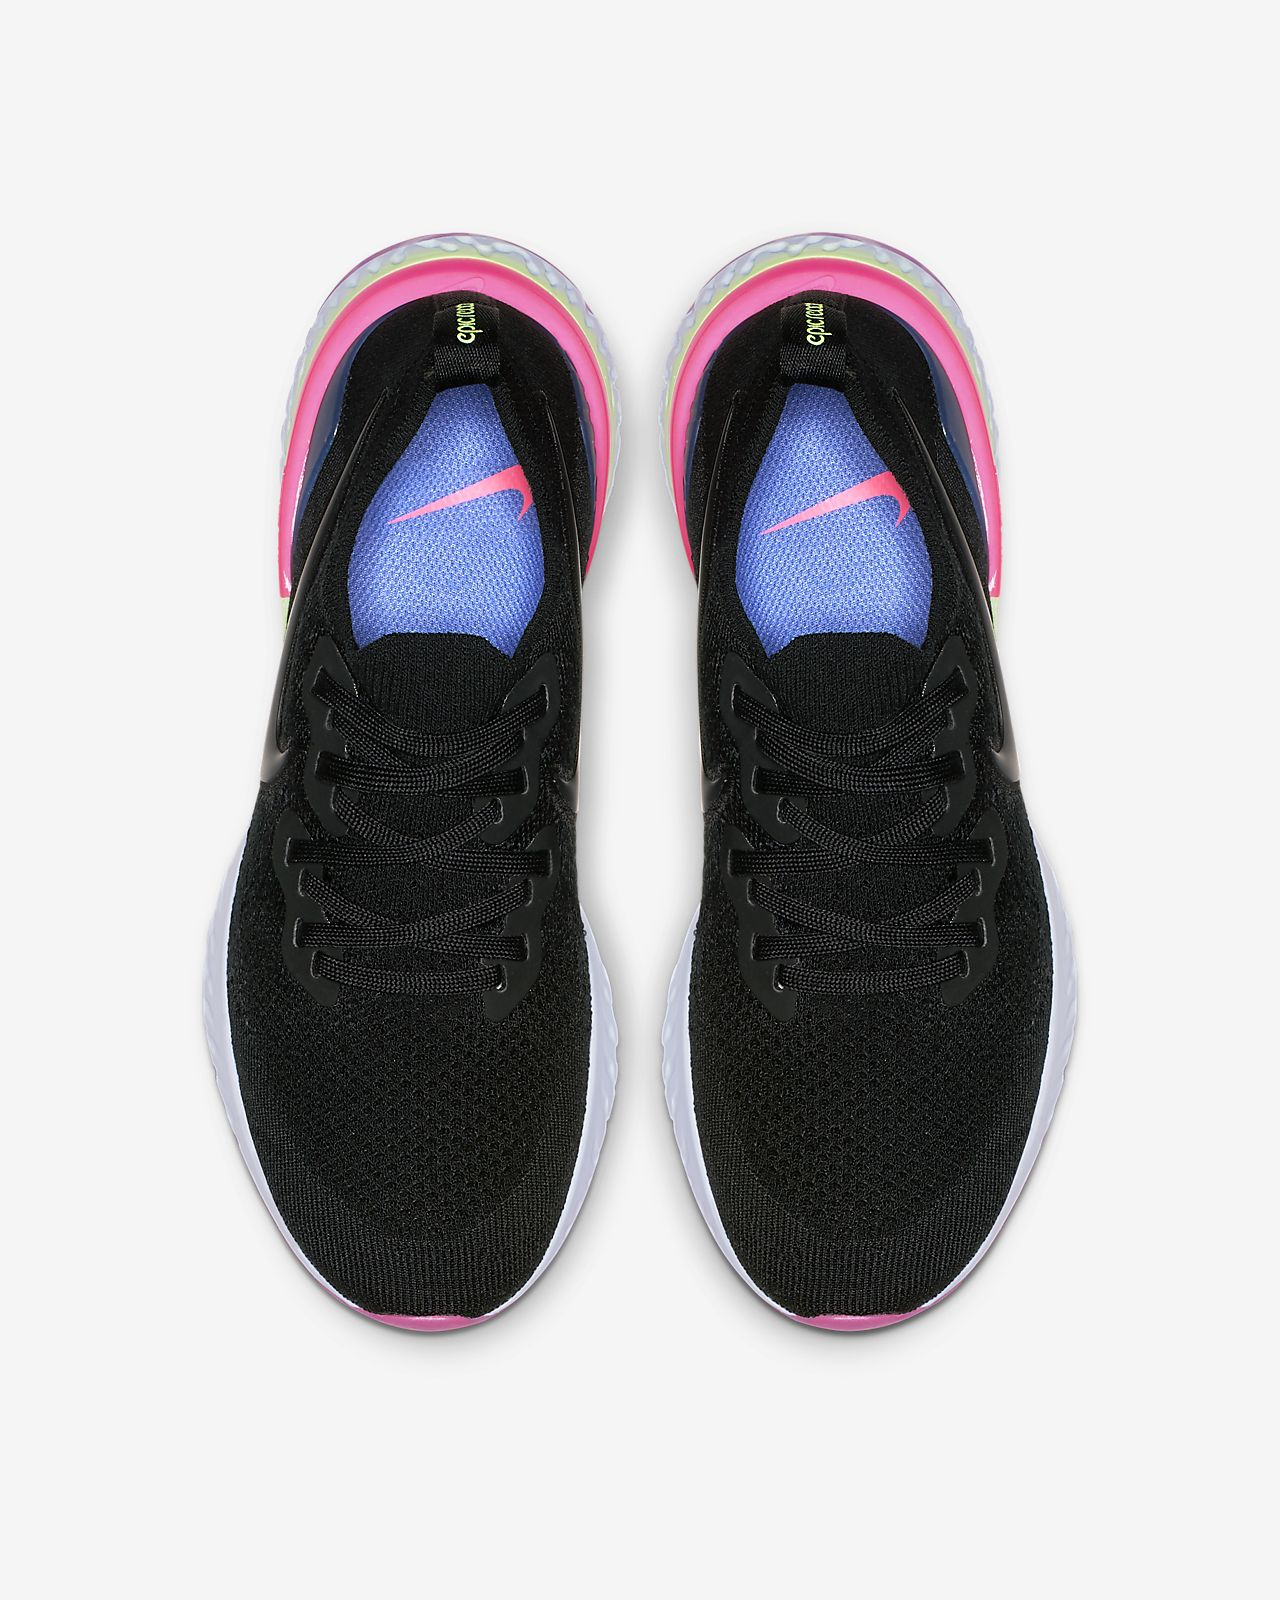 uk availability 152e6 44603 ... Nike Epic React Flyknit 2 Women s Running Shoe